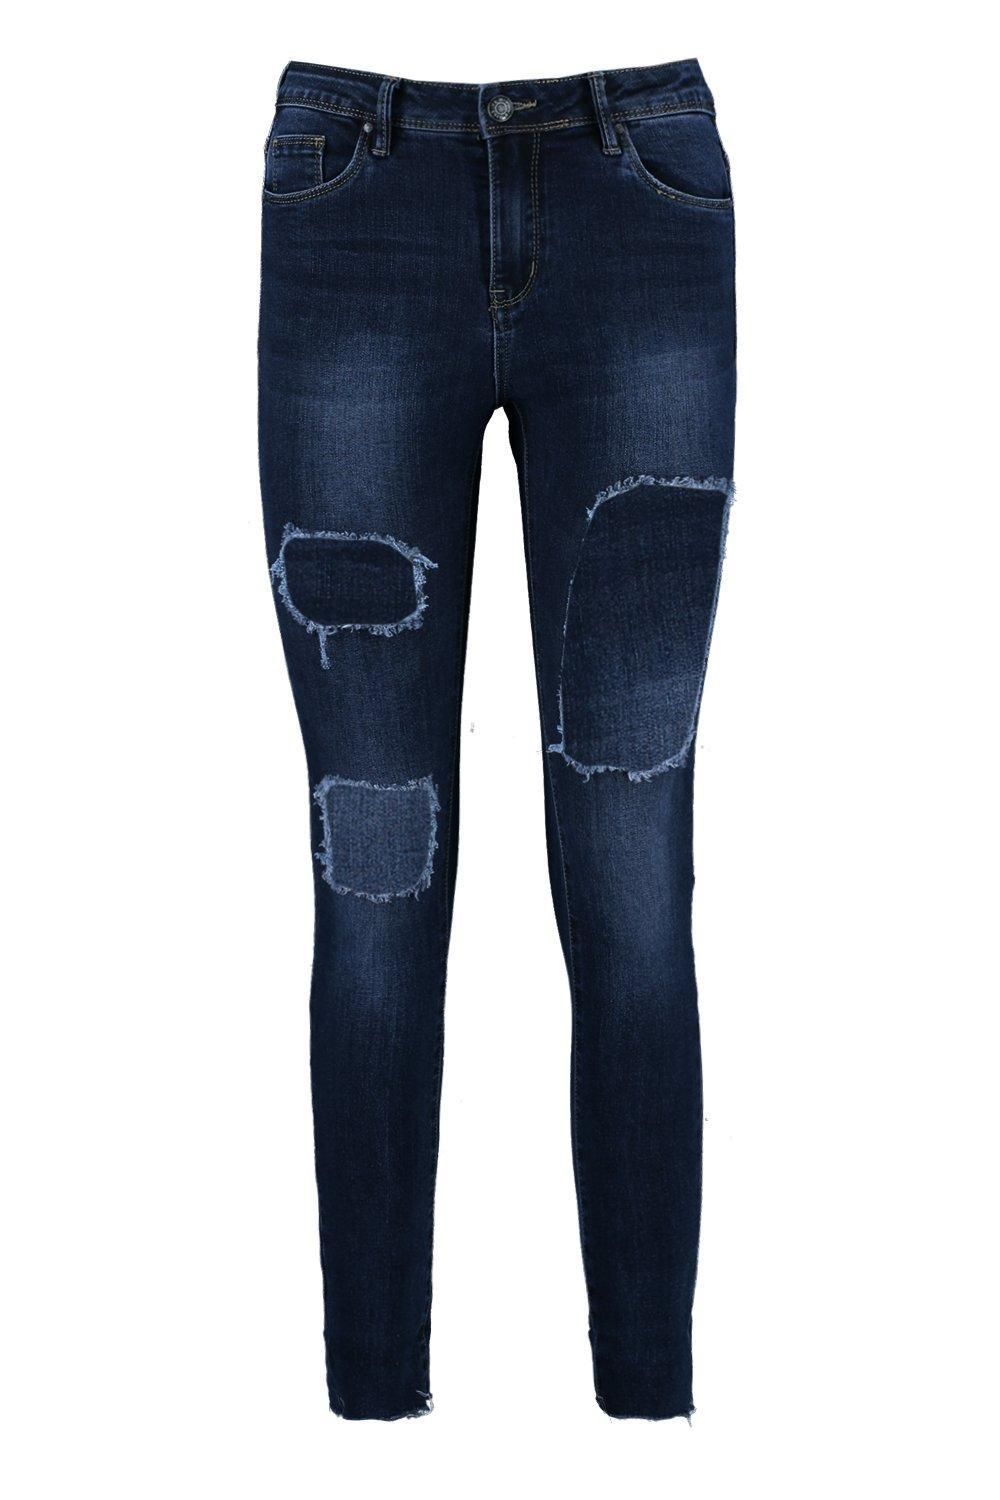 0e9446e998a Gallery. Previously sold at: Boohoo · Women's High Waisted Jeans ...